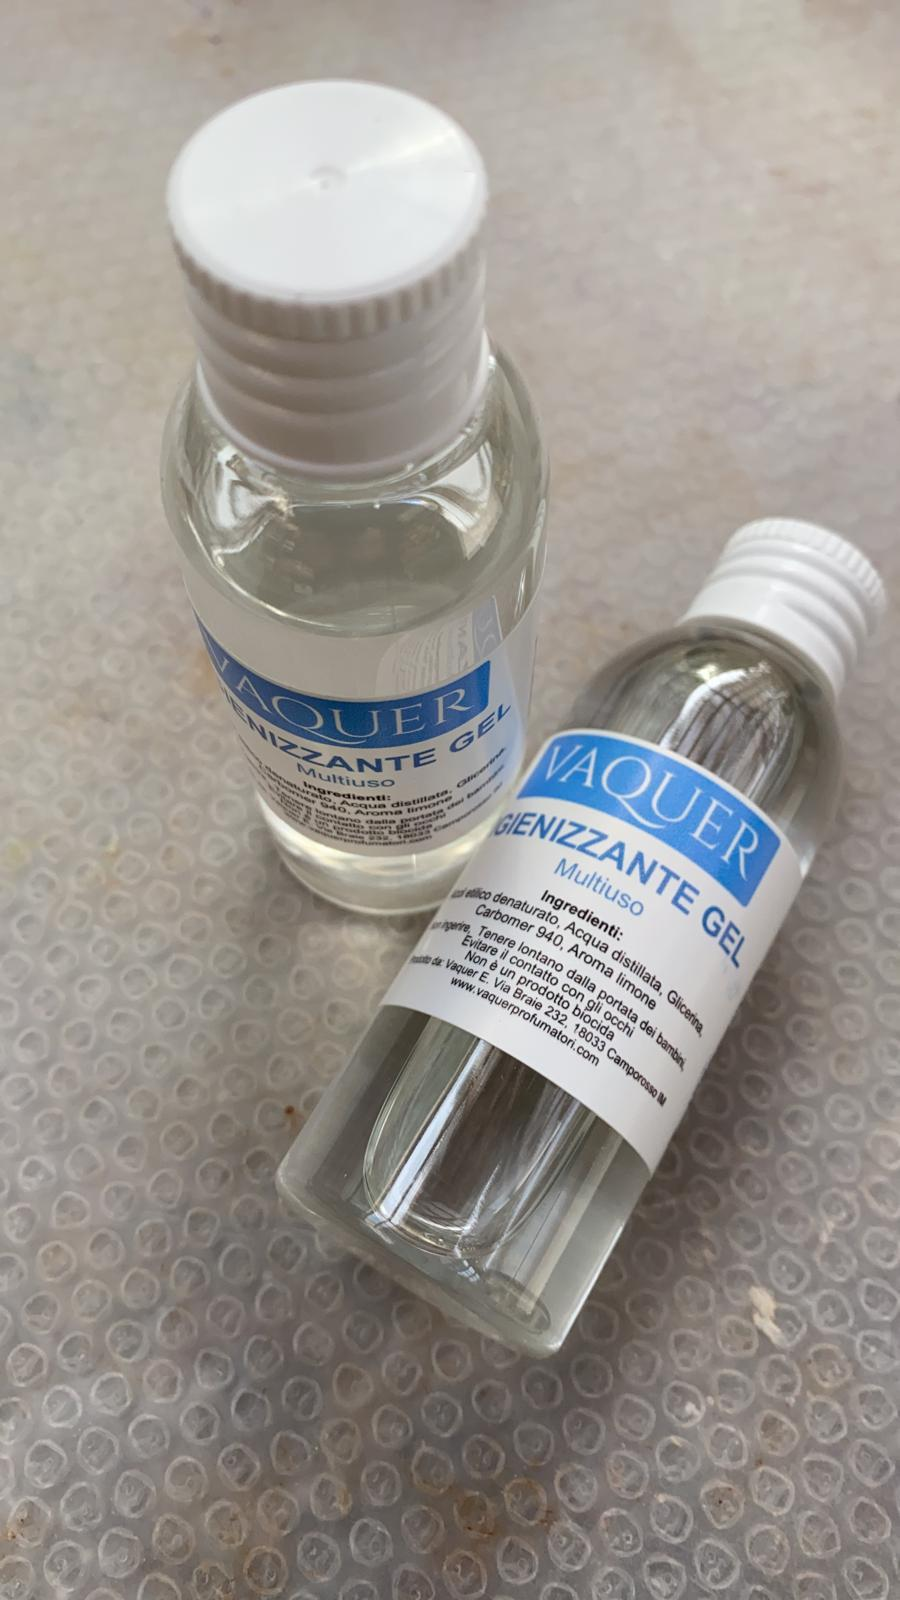 Gel Igienizzante Vaguer 50 ml